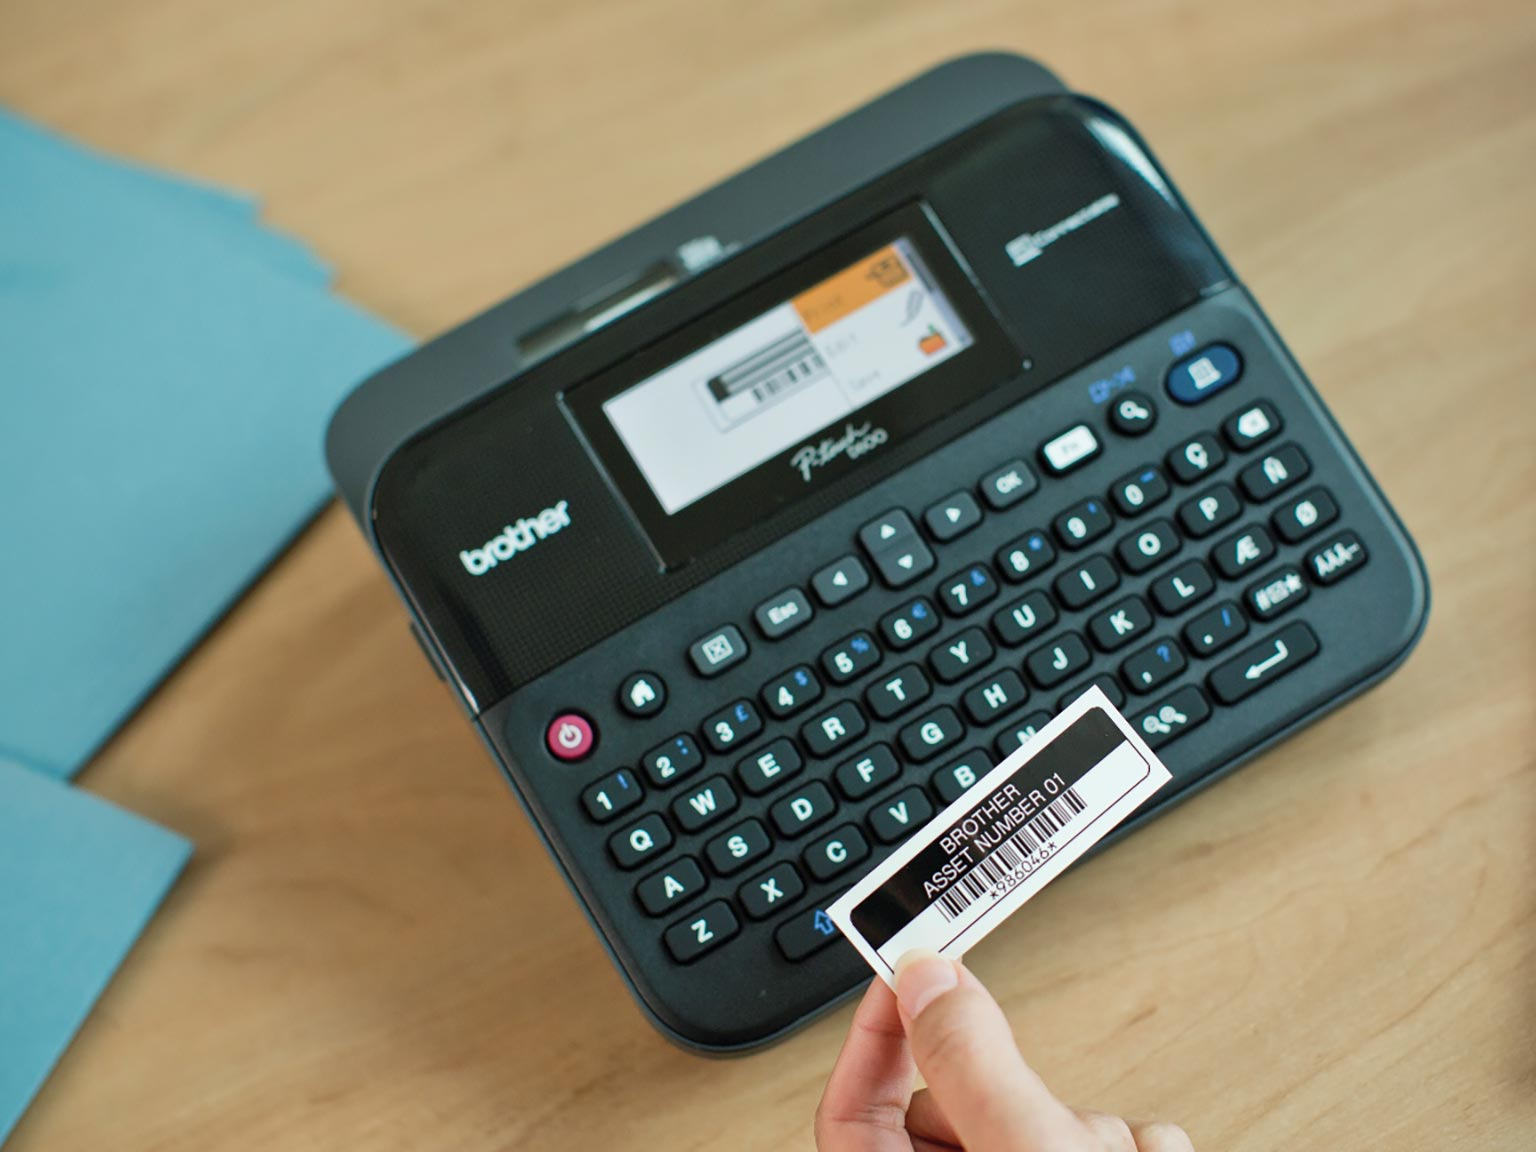 Brother P-touch D600 label printer with asset label being held in hand